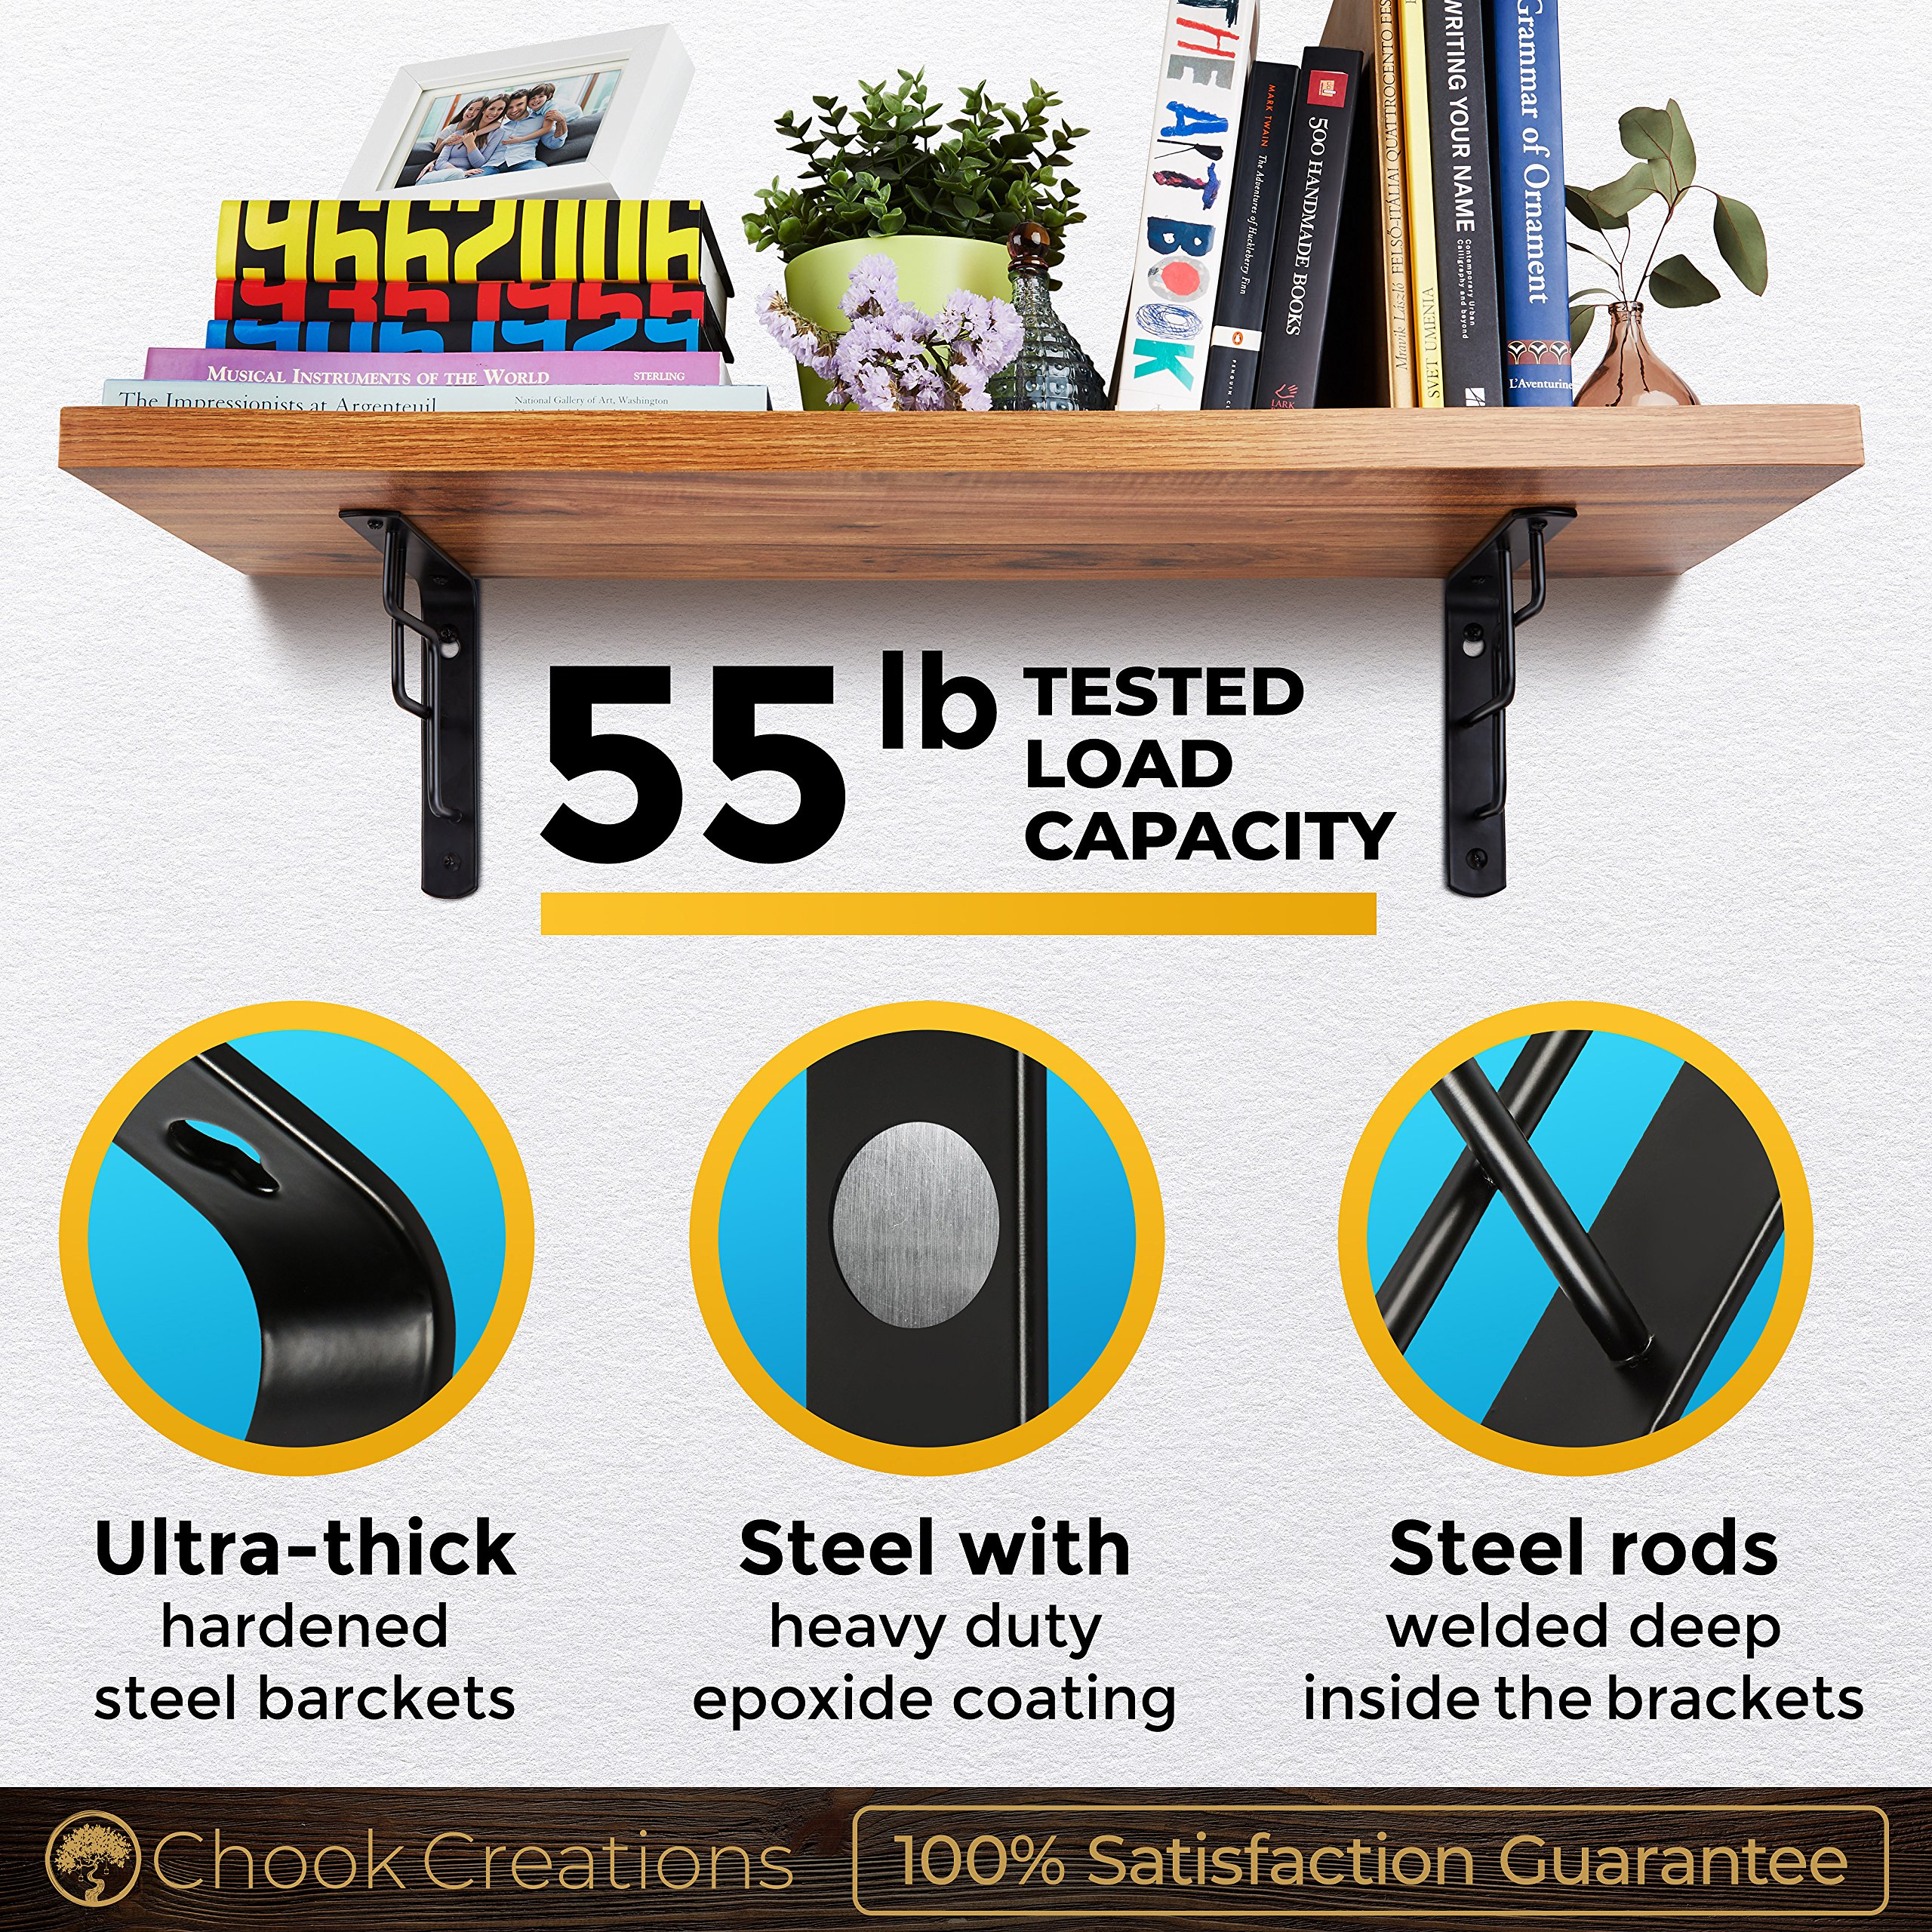 CHOOK – L Shape Shelf Brackets, Heavy Duty, Modern, Decorative | Fit 7 to 12 Inch Shelves | 4 Pack with Screws and Anchors | Semi Industrial Design | for Home or Workplace | Steel Metal black by Chook Creations (Image #4)